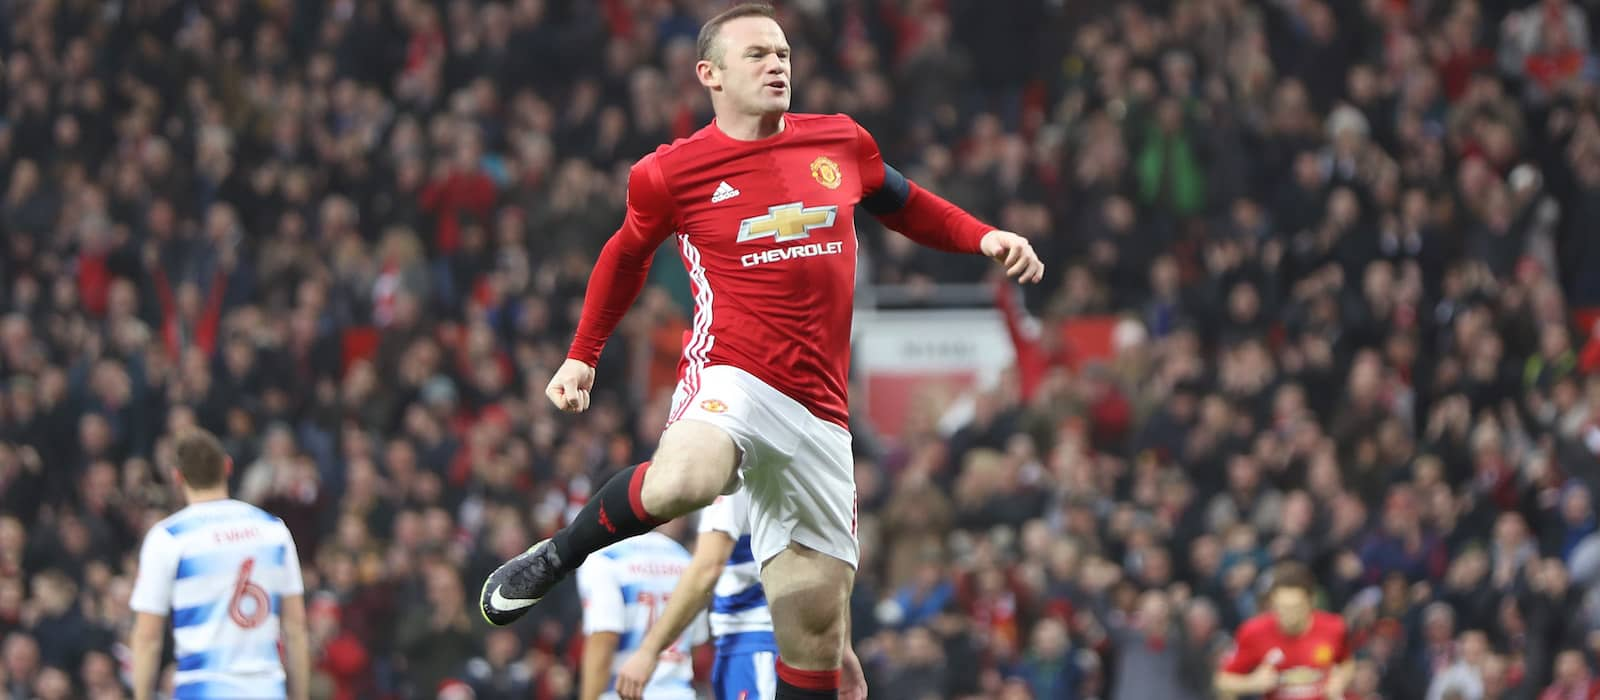 Man United players pay tribute to Wayne Rooney